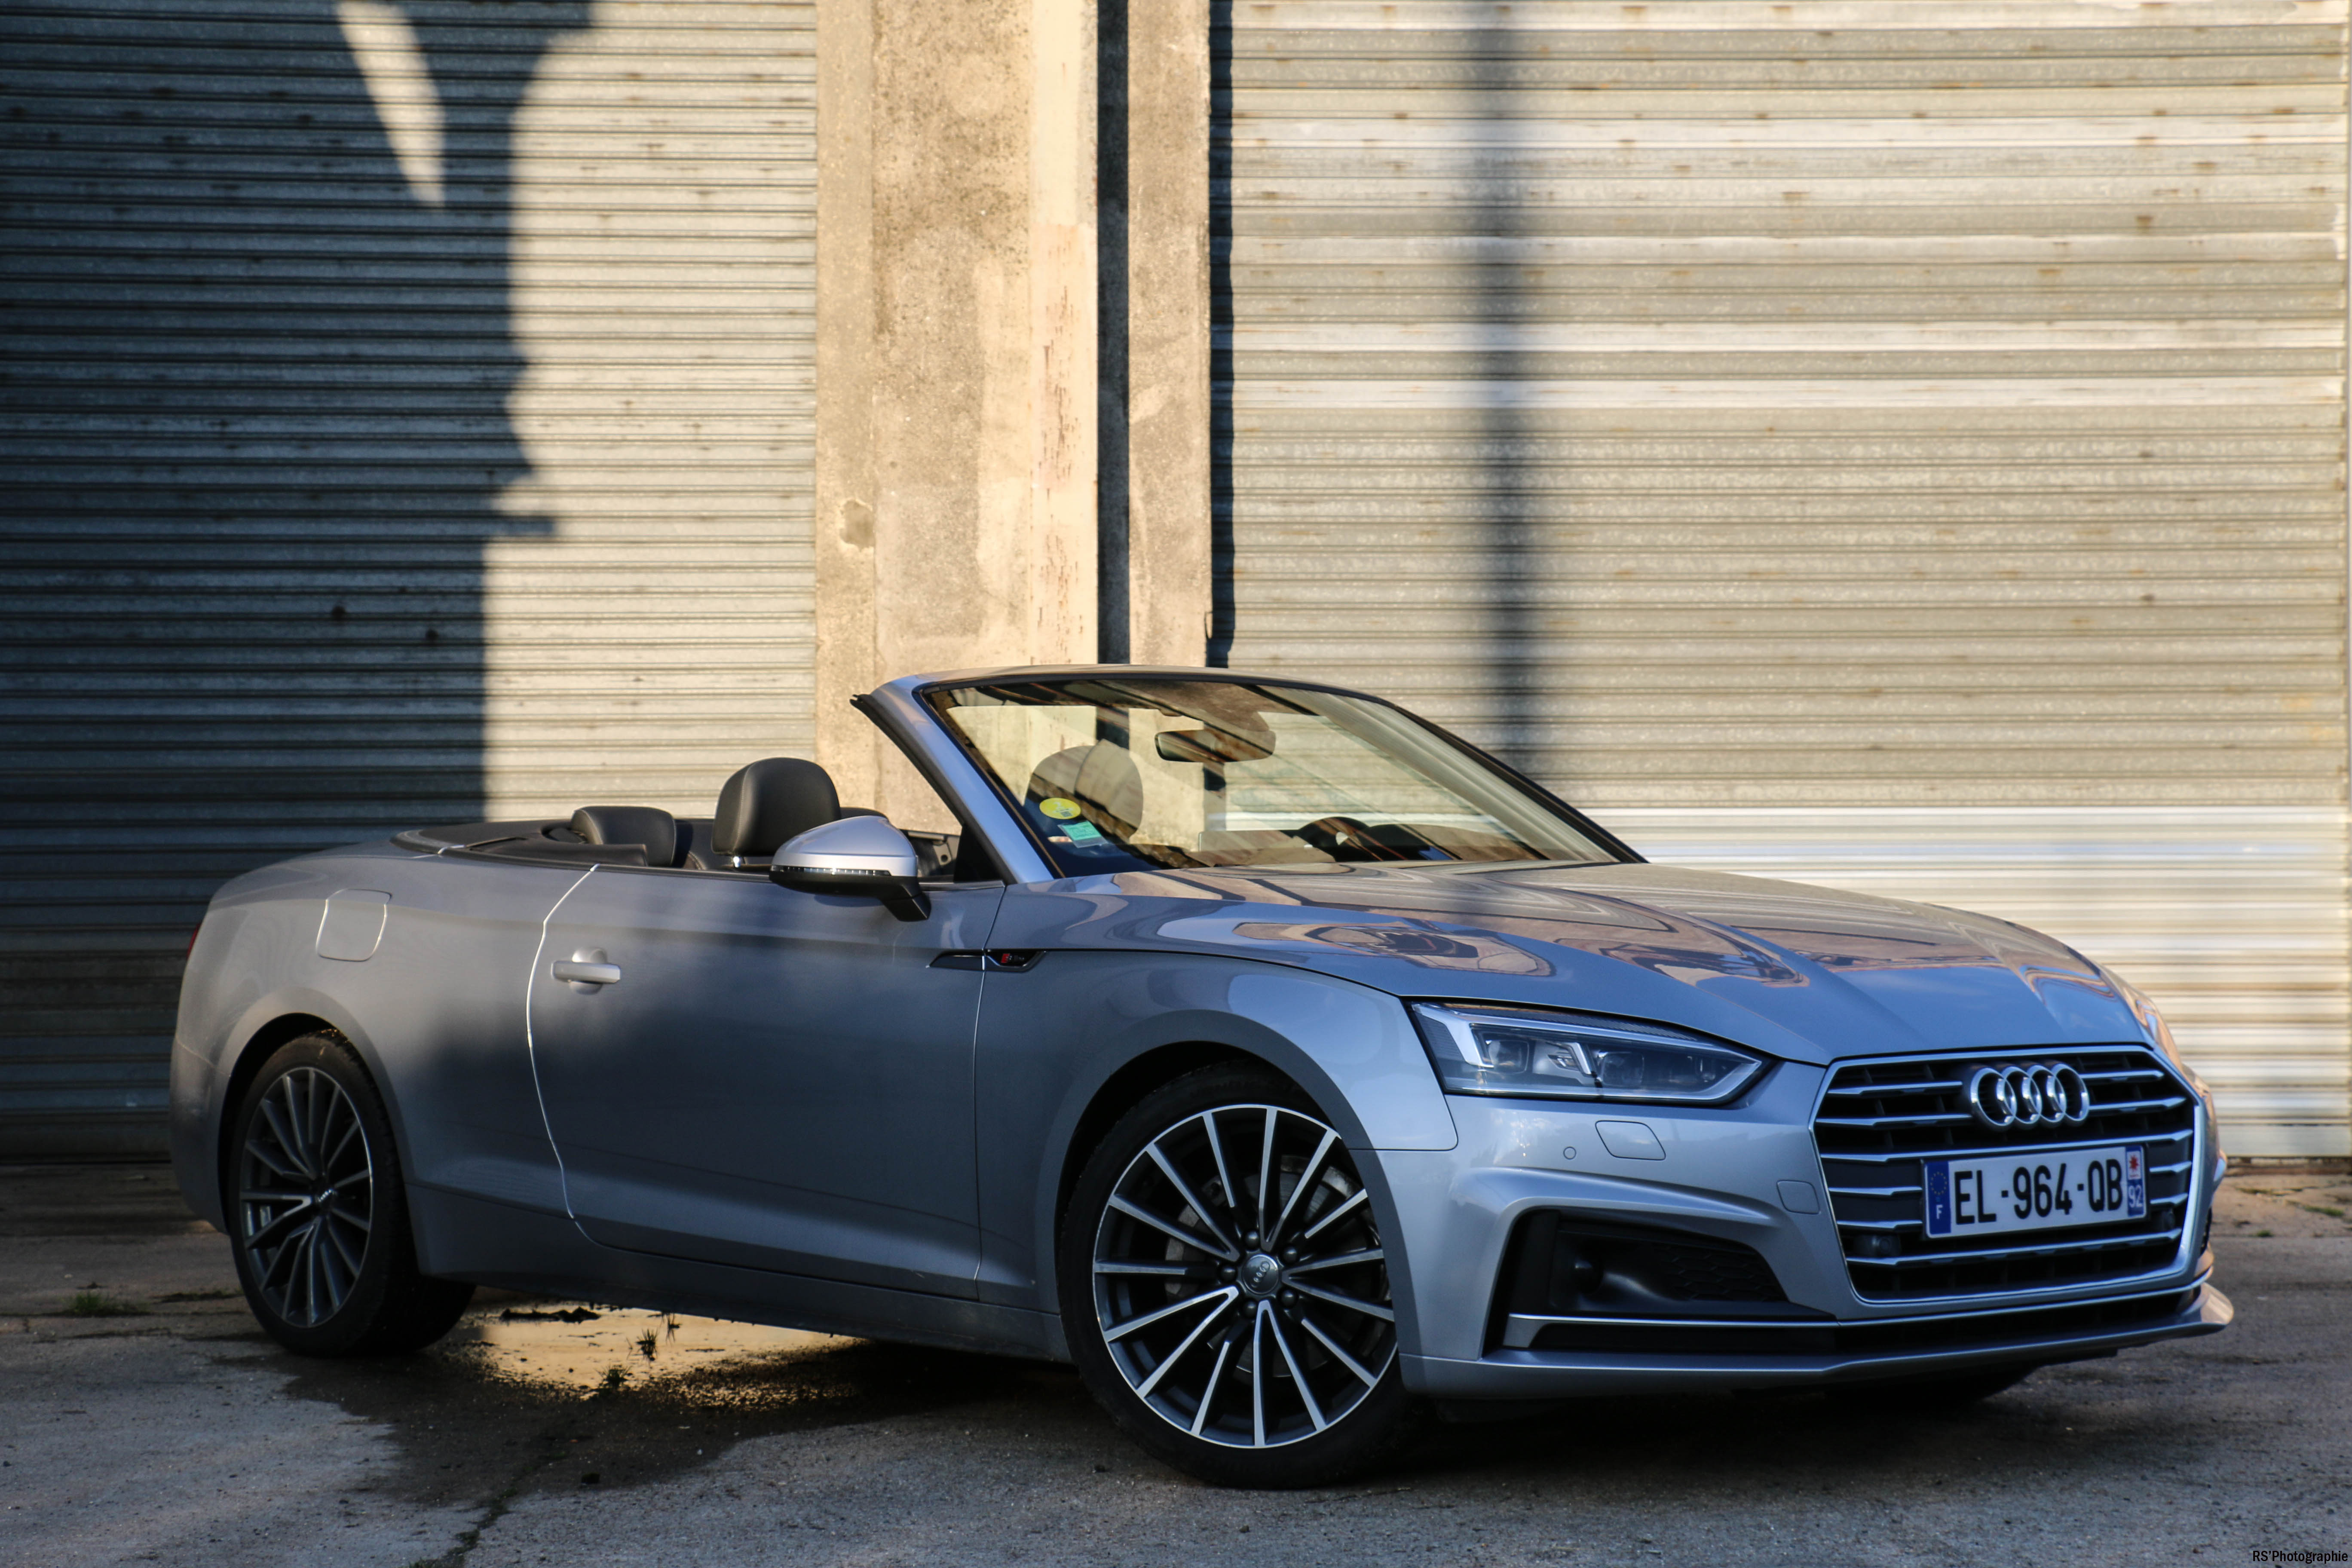 audia5cab43-audi-a5-190-tdi-cabriolet-avant-front-Arnaud Demasier-RSPhotographie